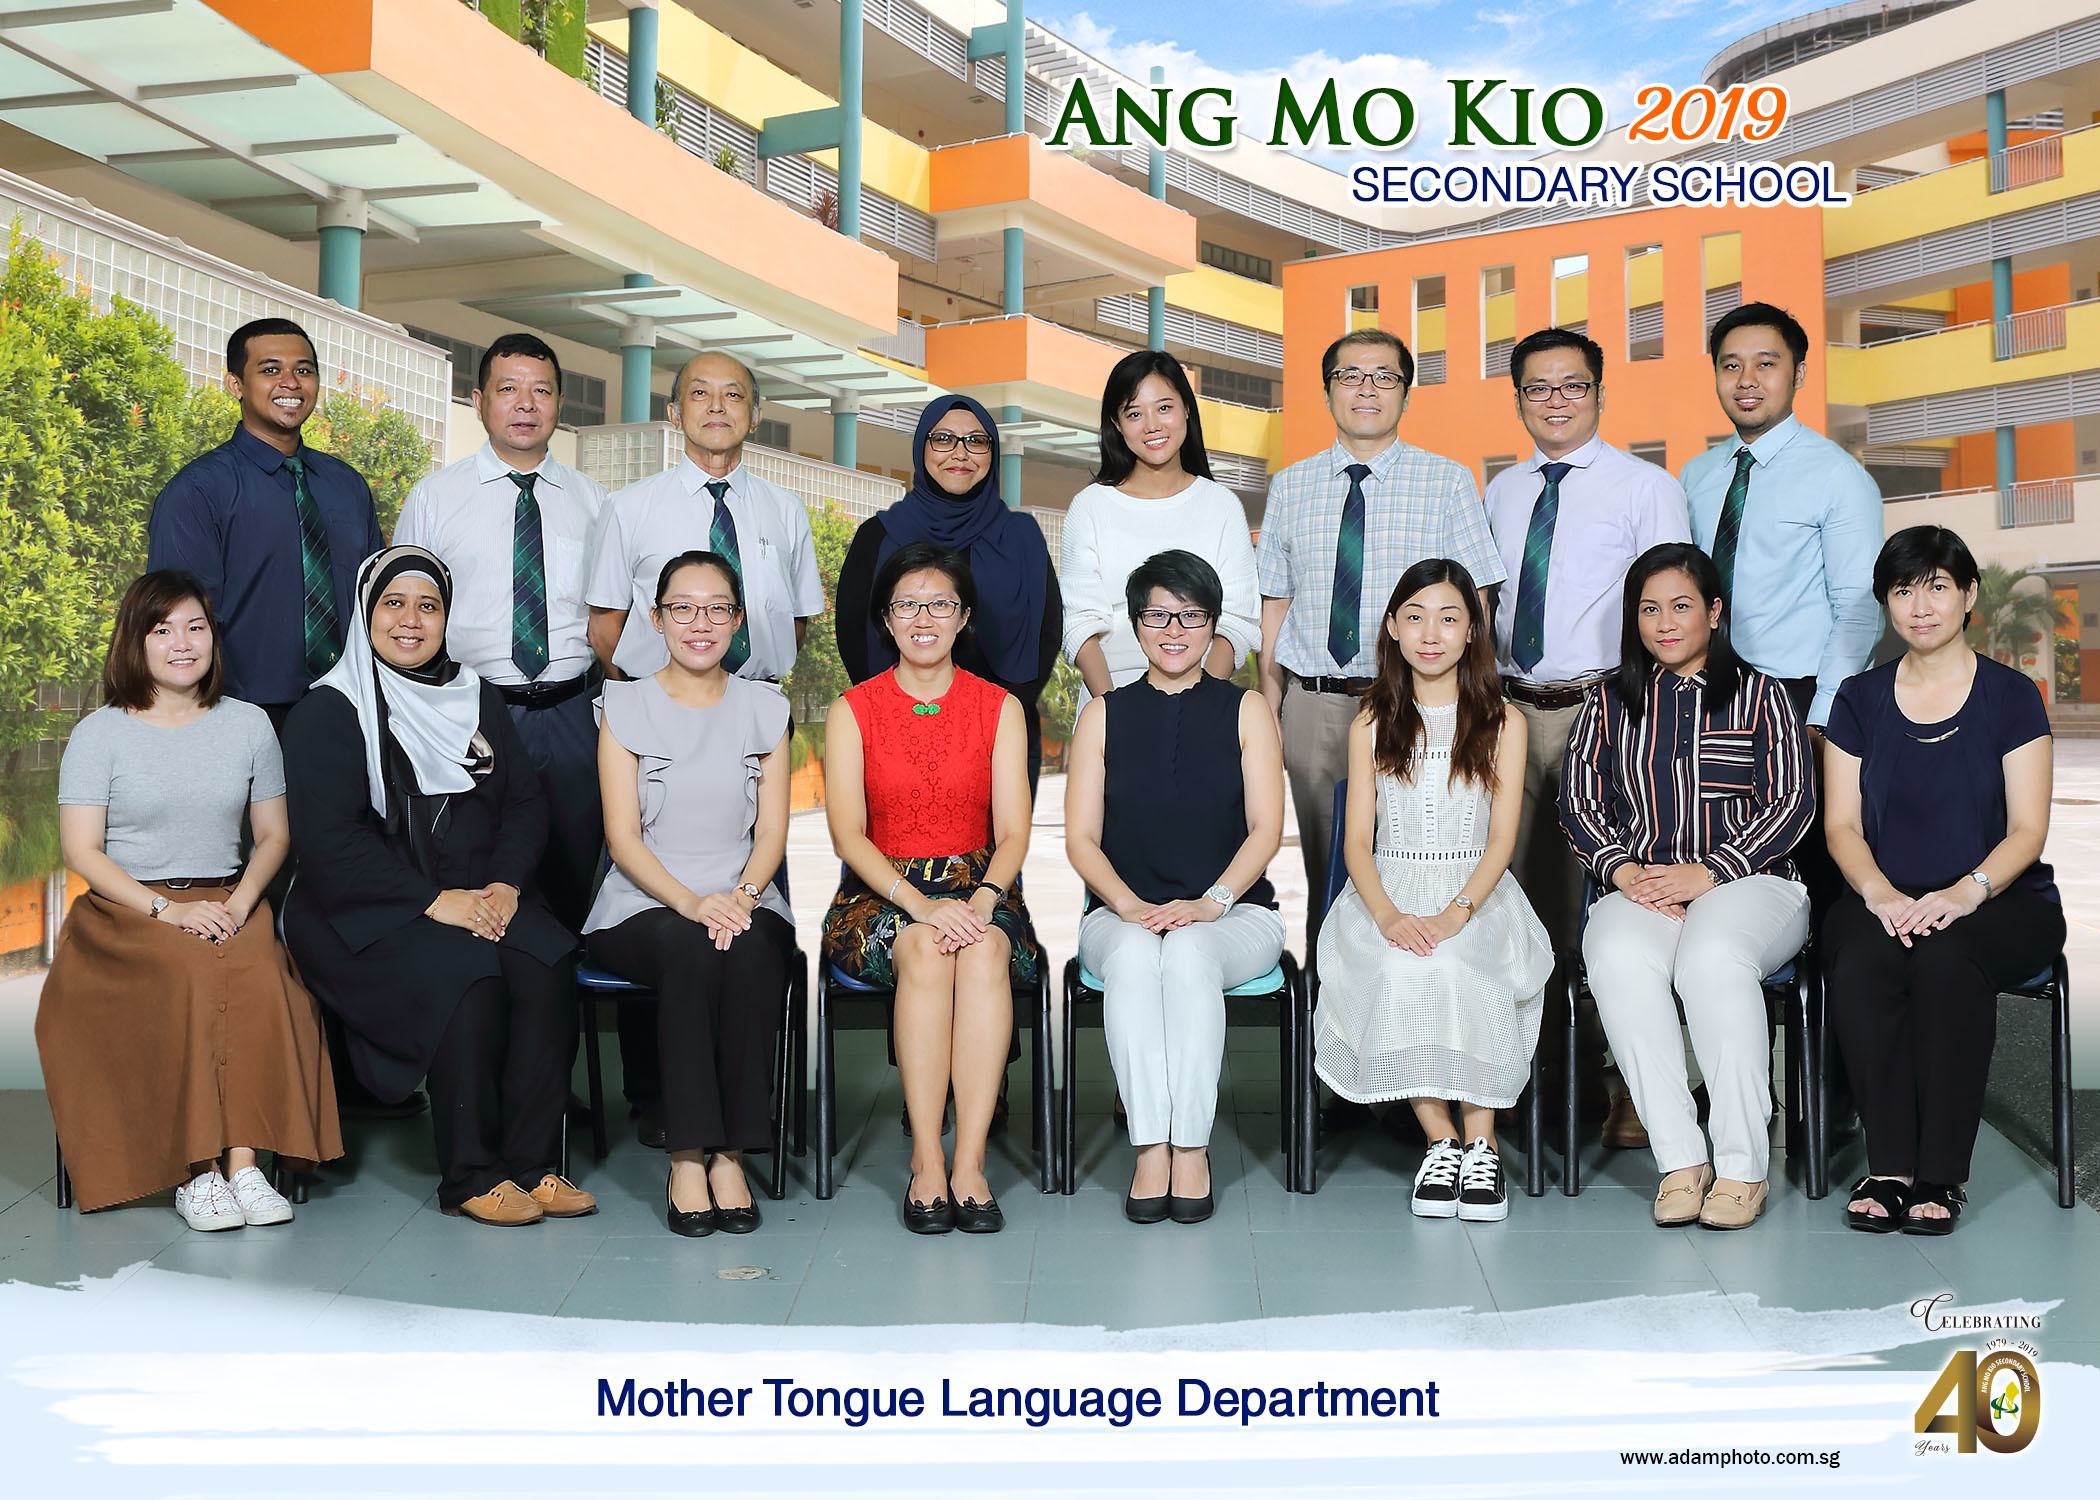 mother tongue language department 2_2020.jpg